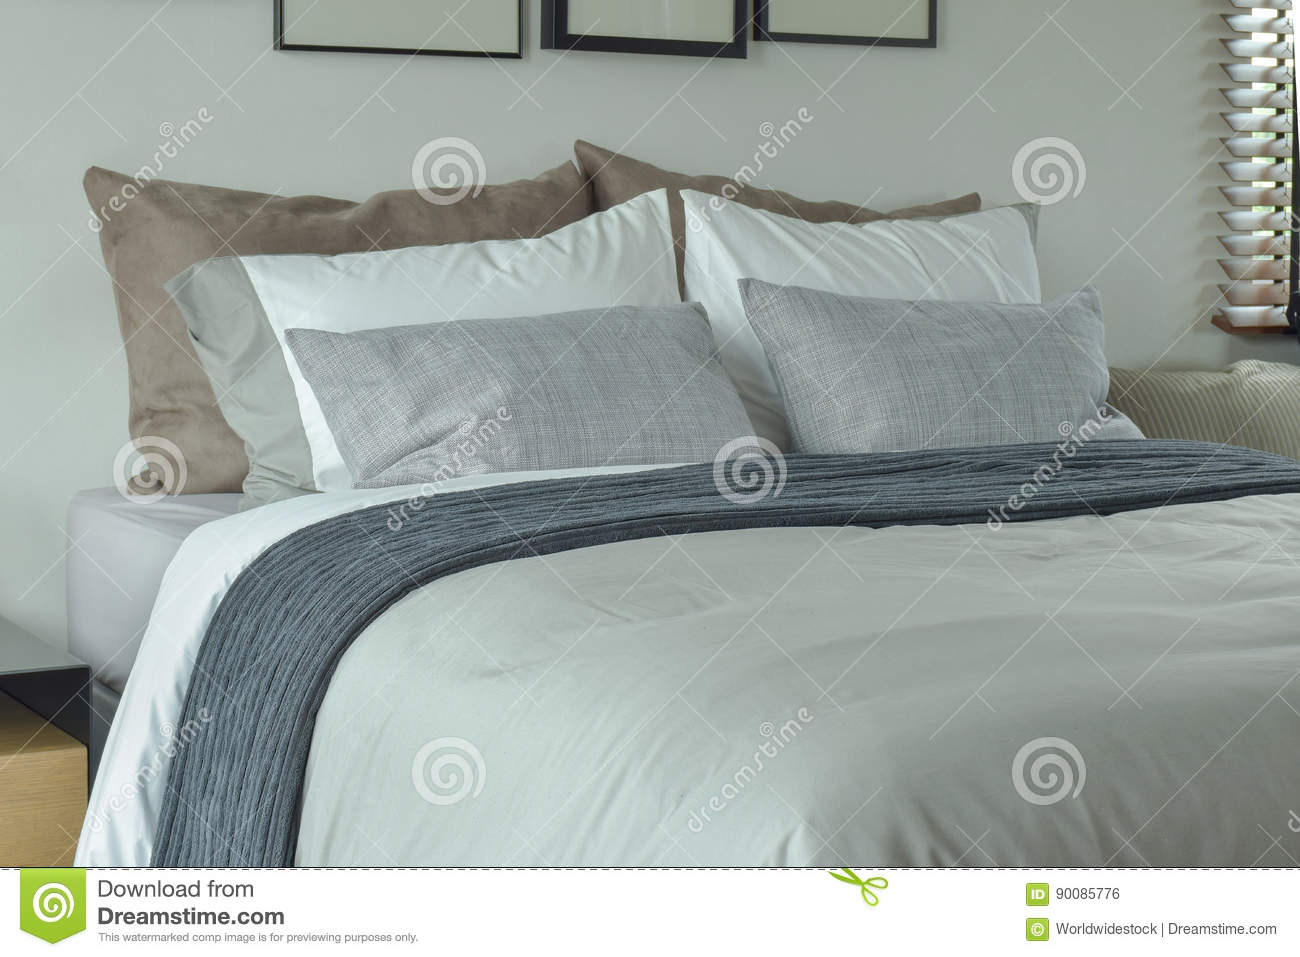 Classic Color Scheme Bedding For King Size Bed Stock Photo Image Of Serene Bedspread 90085776